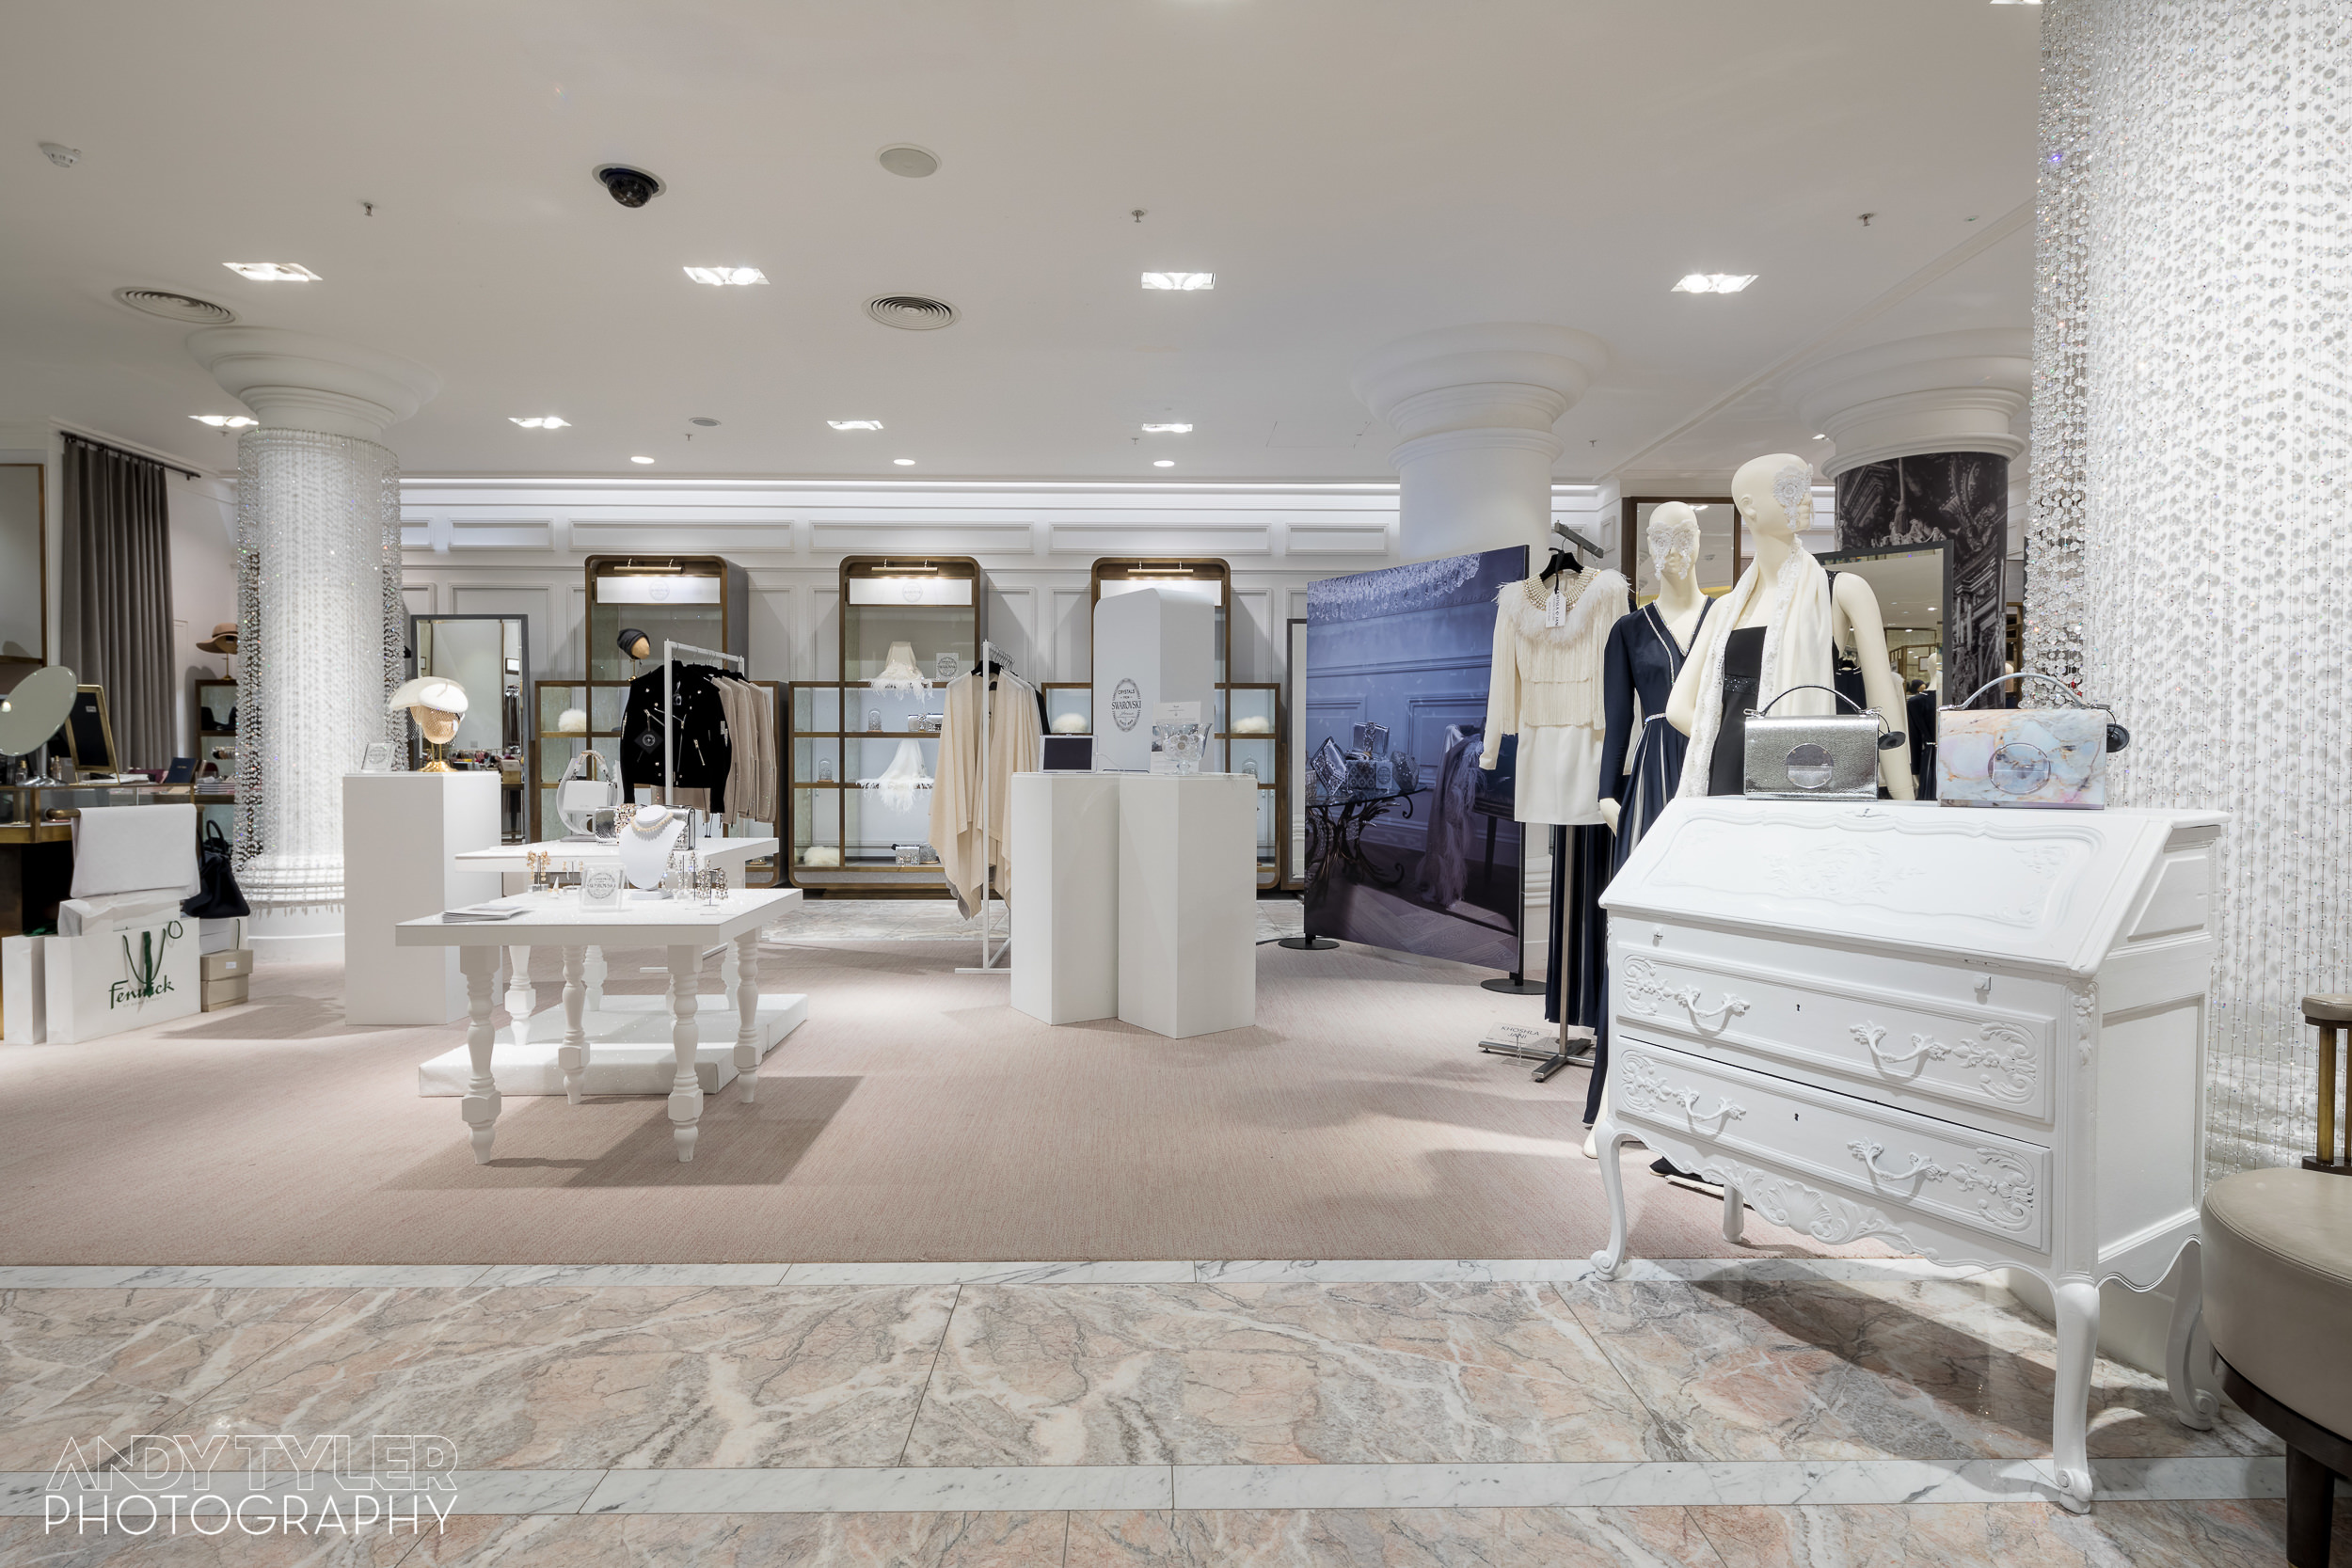 Andy_Tyler_Photography_Luxury_Retail_Interior_008_Andy_Tyler_Photography_073-5DB_7784.jpg